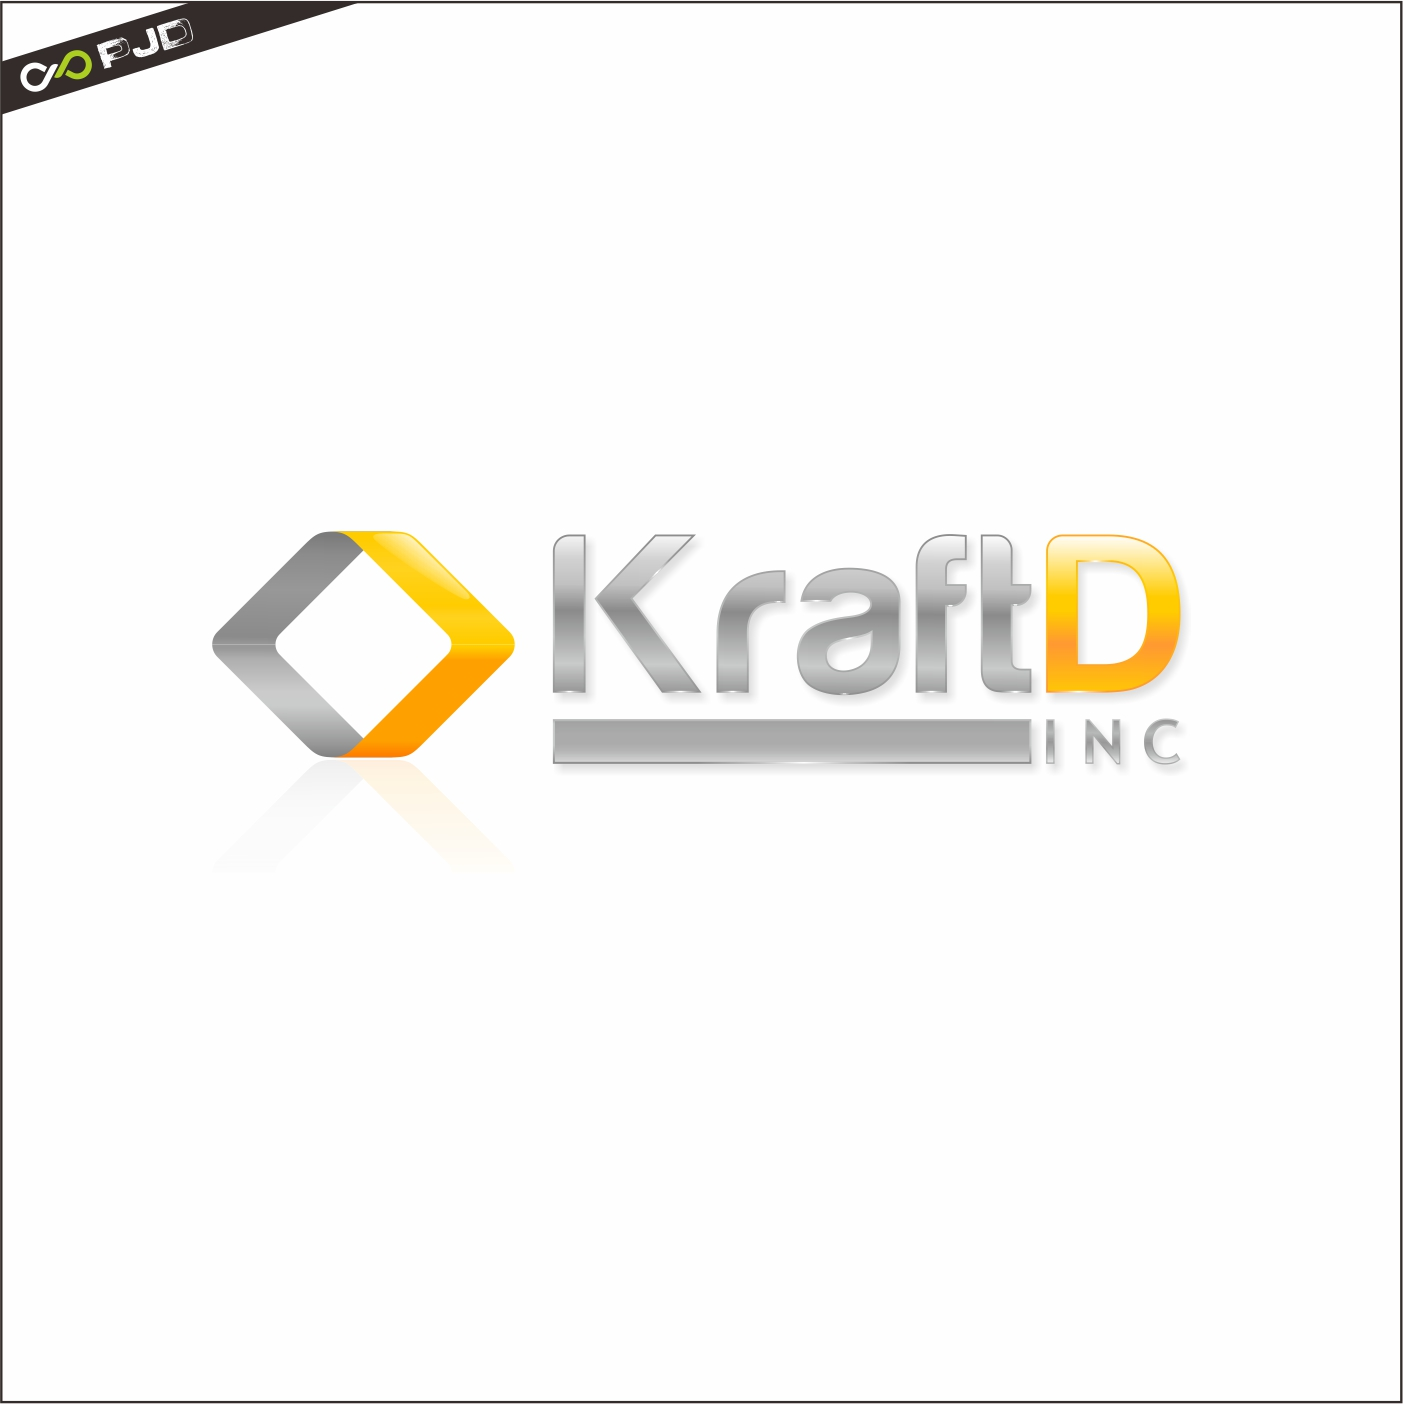 Logo Design by PJD - Entry No. 481 in the Logo Design Contest Unique Logo Design Wanted for Kraft D Inc.